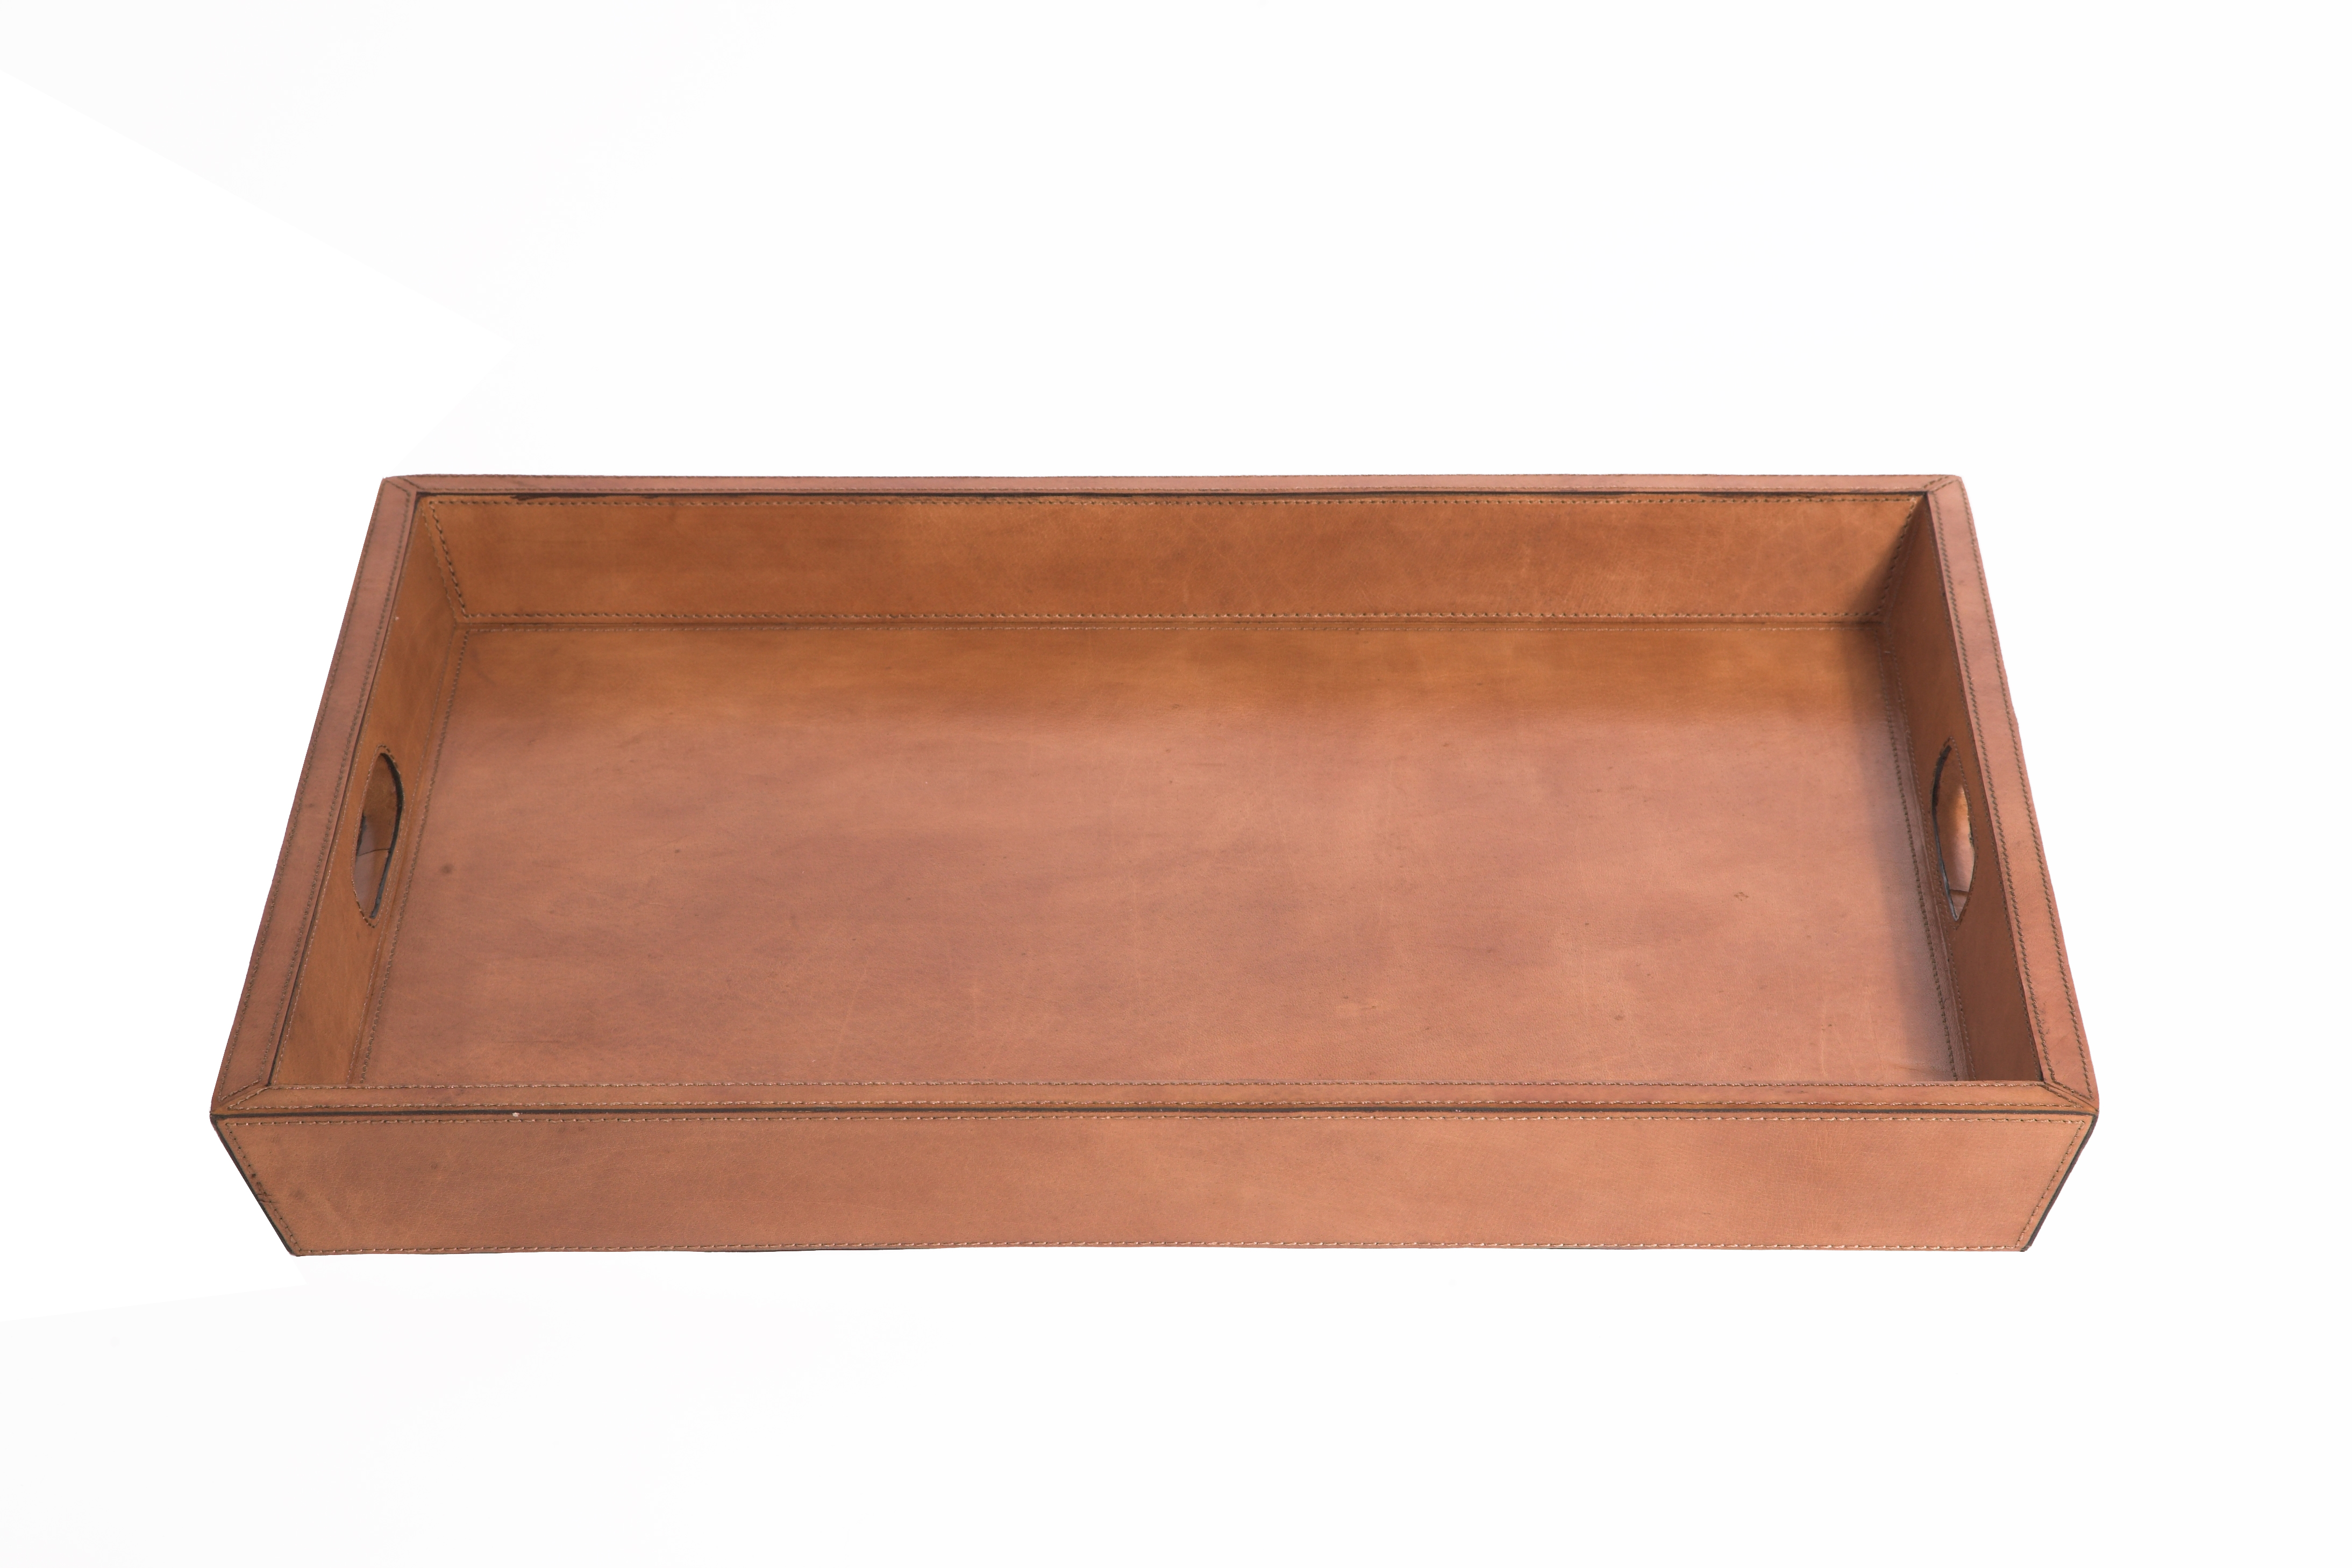 Large Leather Tray with Sloping Sides at The Perfect  : 1272020461leathertraywithslopedsides from www.theperfectpresentcompany.co.uk size 4374 x 2916 jpeg 3438kB